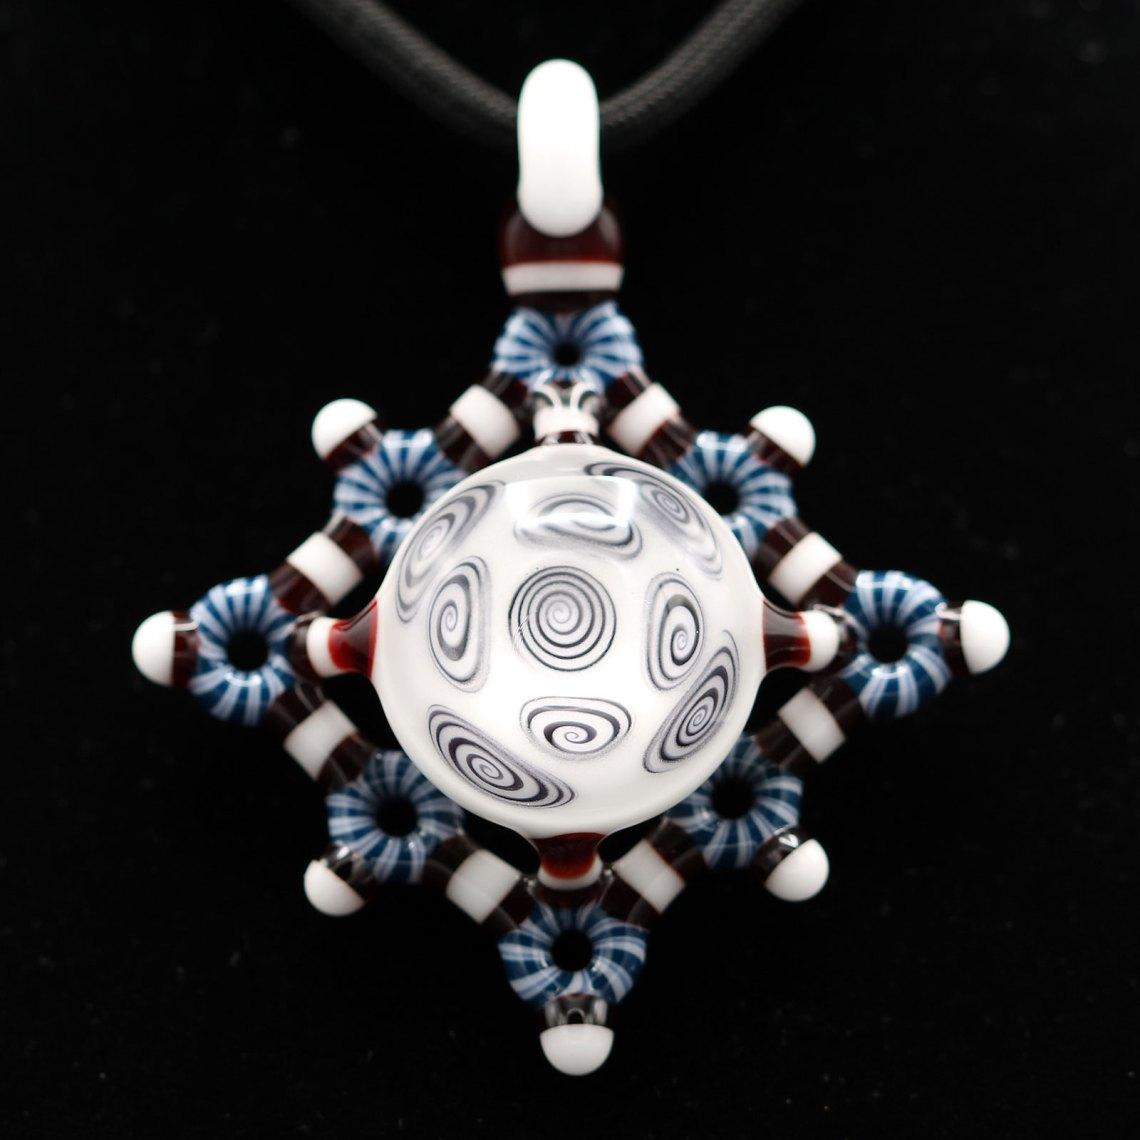 Kaja Glass – Microspiral Circletech Shield Pendant